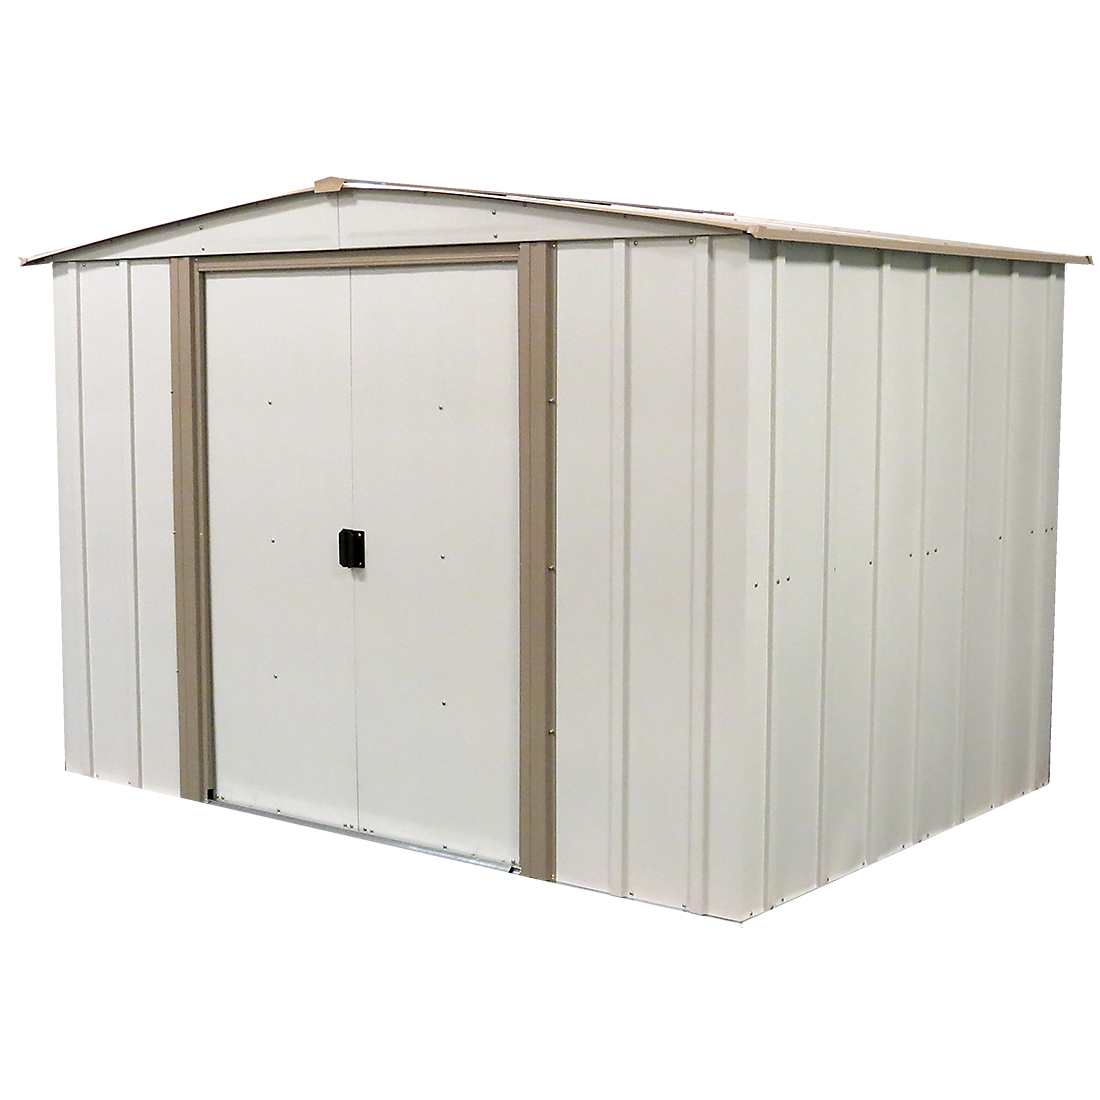 Salem 8 x 6 ft. Shed